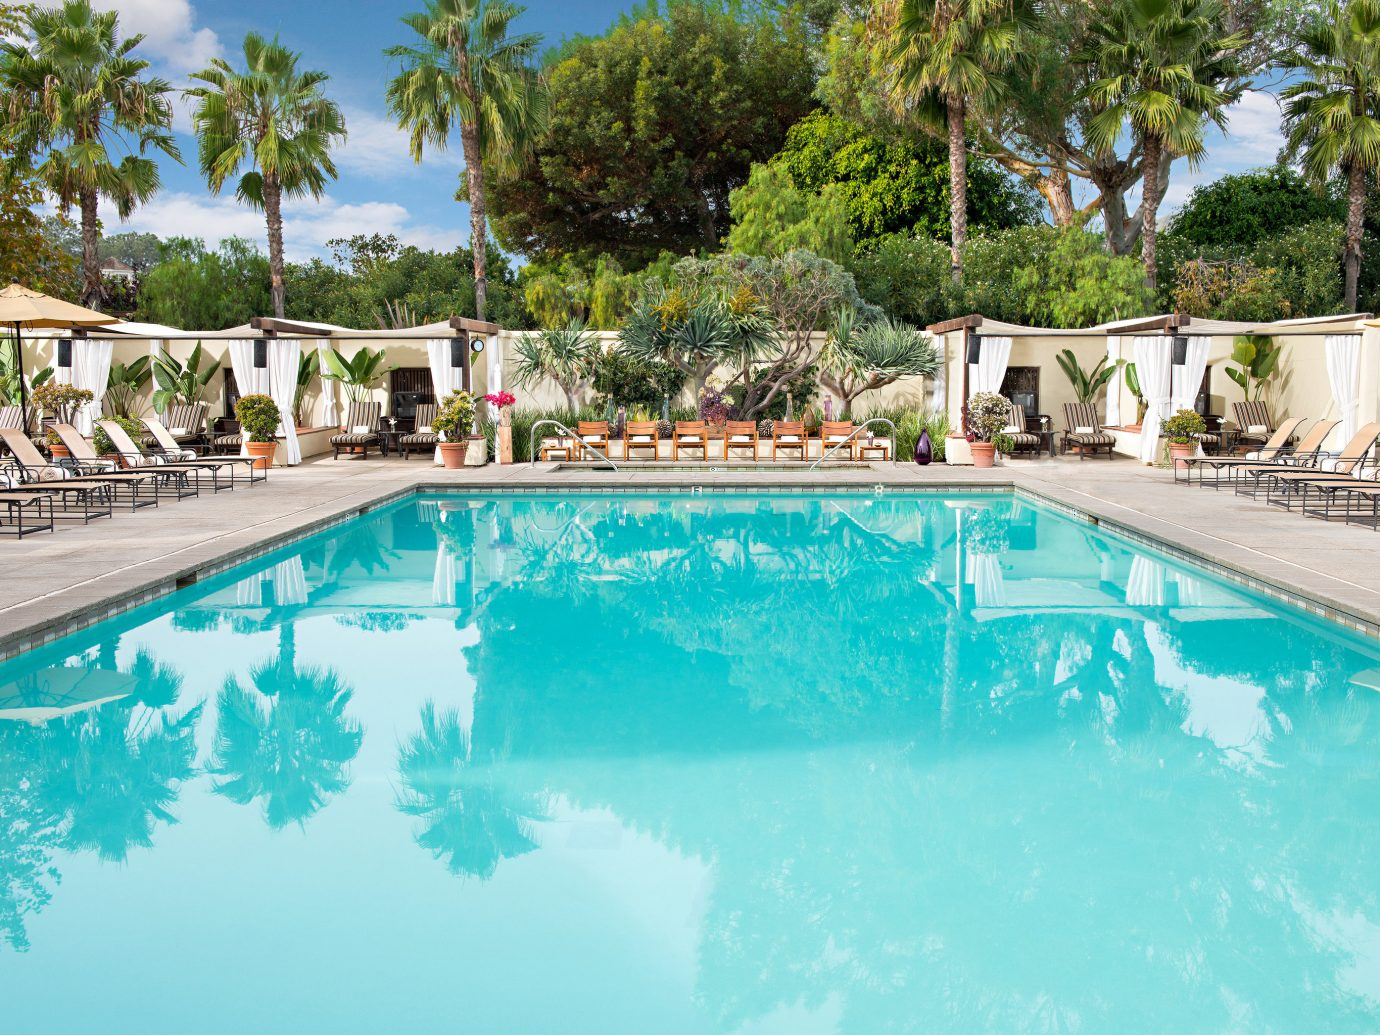 Outdoor Pool At Estancia Hotel And Spa In La Jolla, San Diego